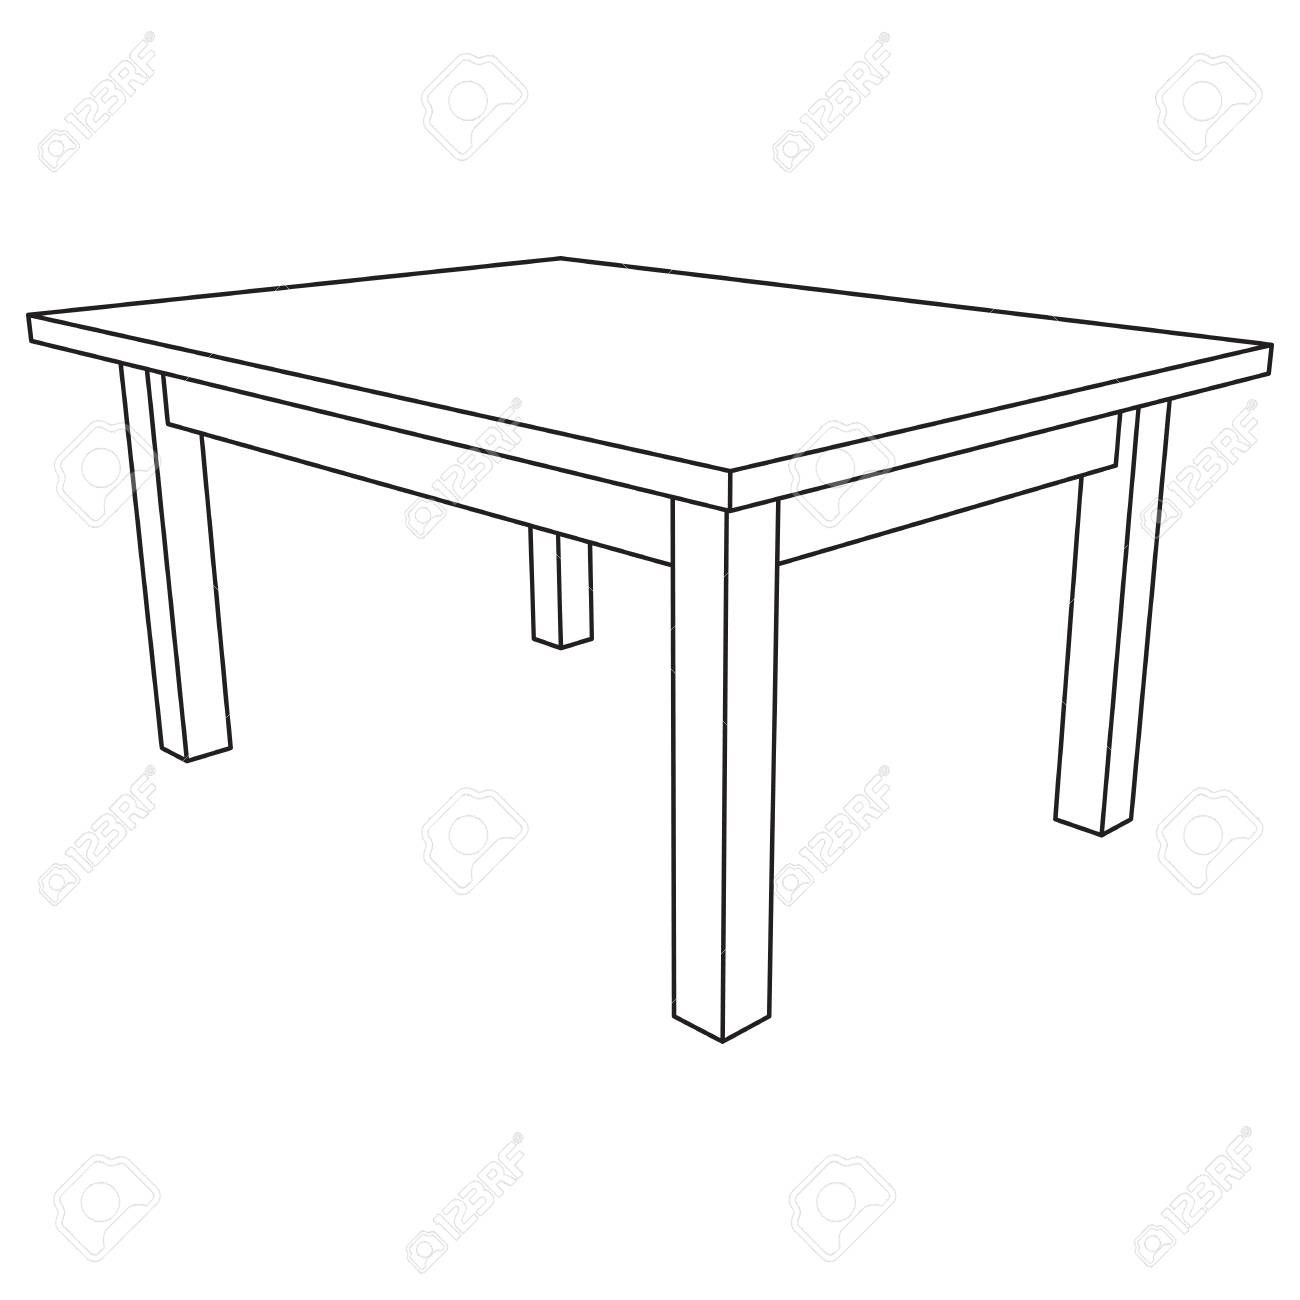 Table furniture wireframe blueprint linear outline pedestal table furniture wireframe blueprint linear outline pedestal vector illustration stock vector 86989153 malvernweather Choice Image